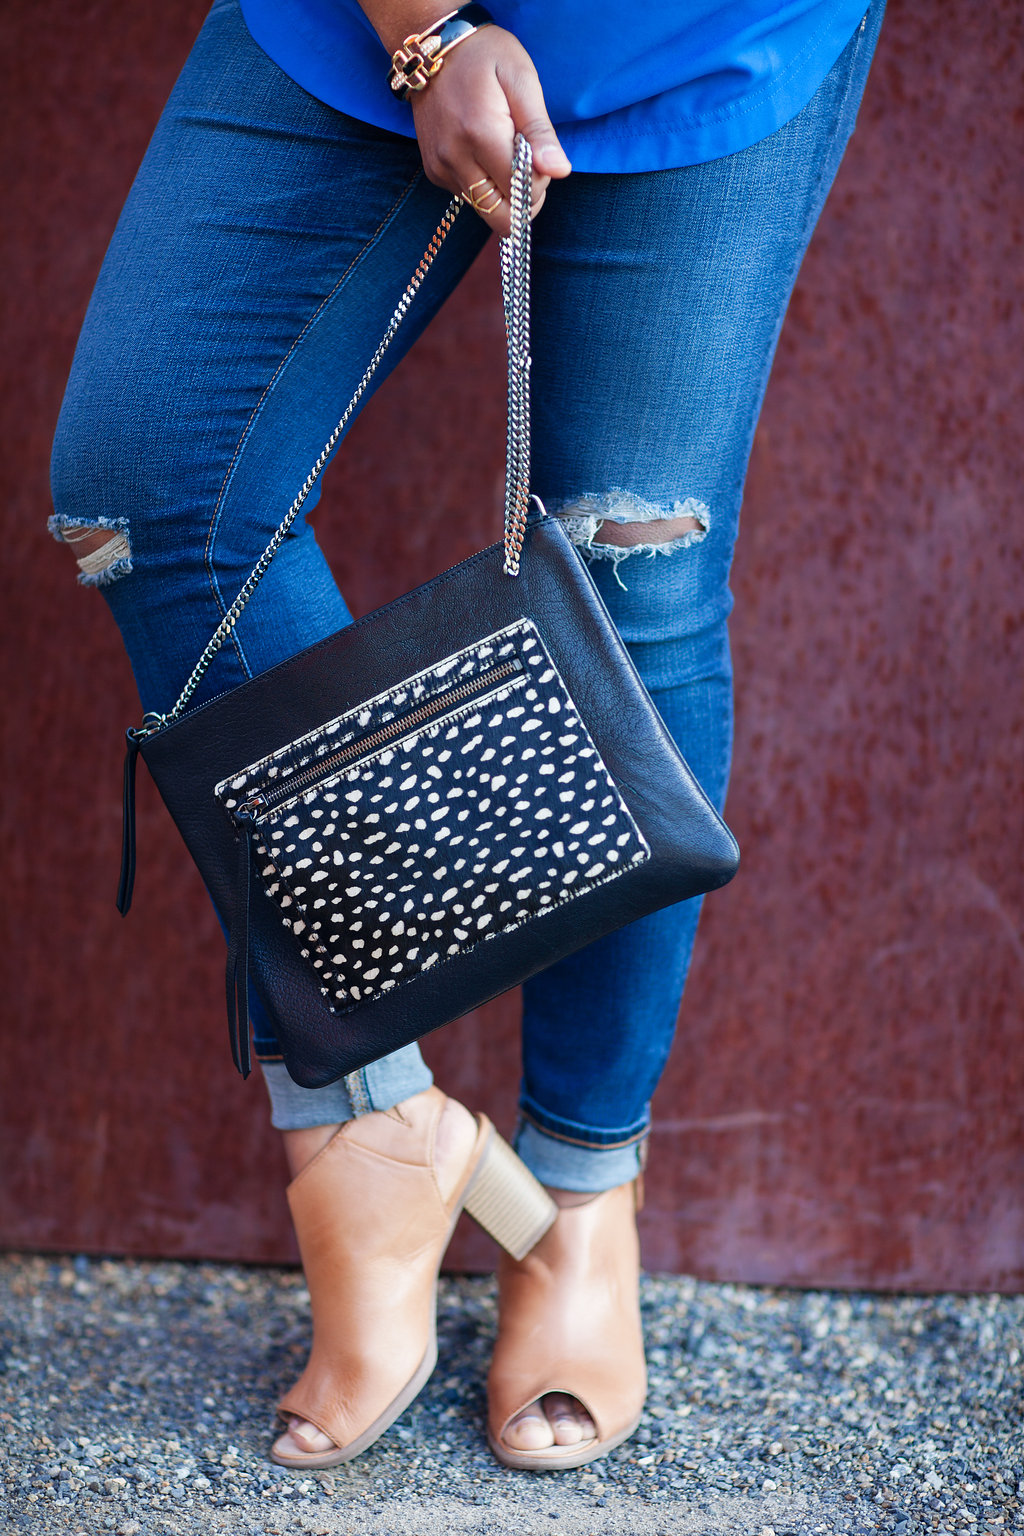 Now that Spring has officially arrived, it's time to move those winter clothes to the back of the closet. I picked up this calf hair purse (winter handbag), and want it to work for Spring.